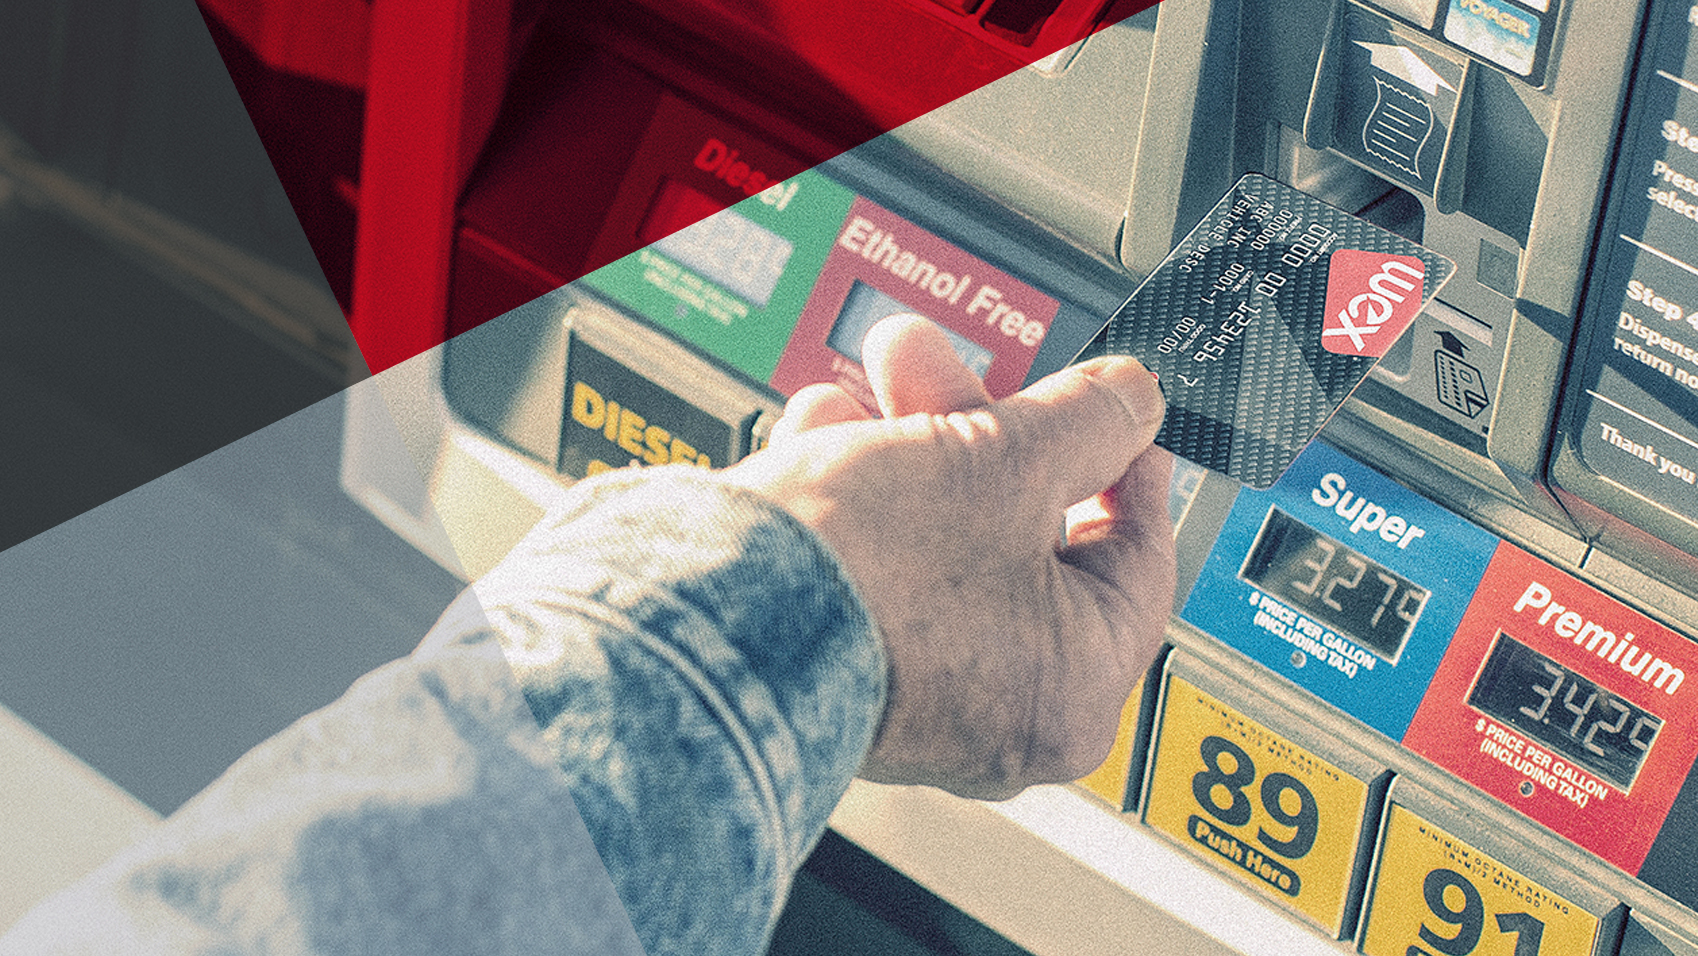 Fleet Management Fuel Cards For Small Businesses Wex Inc